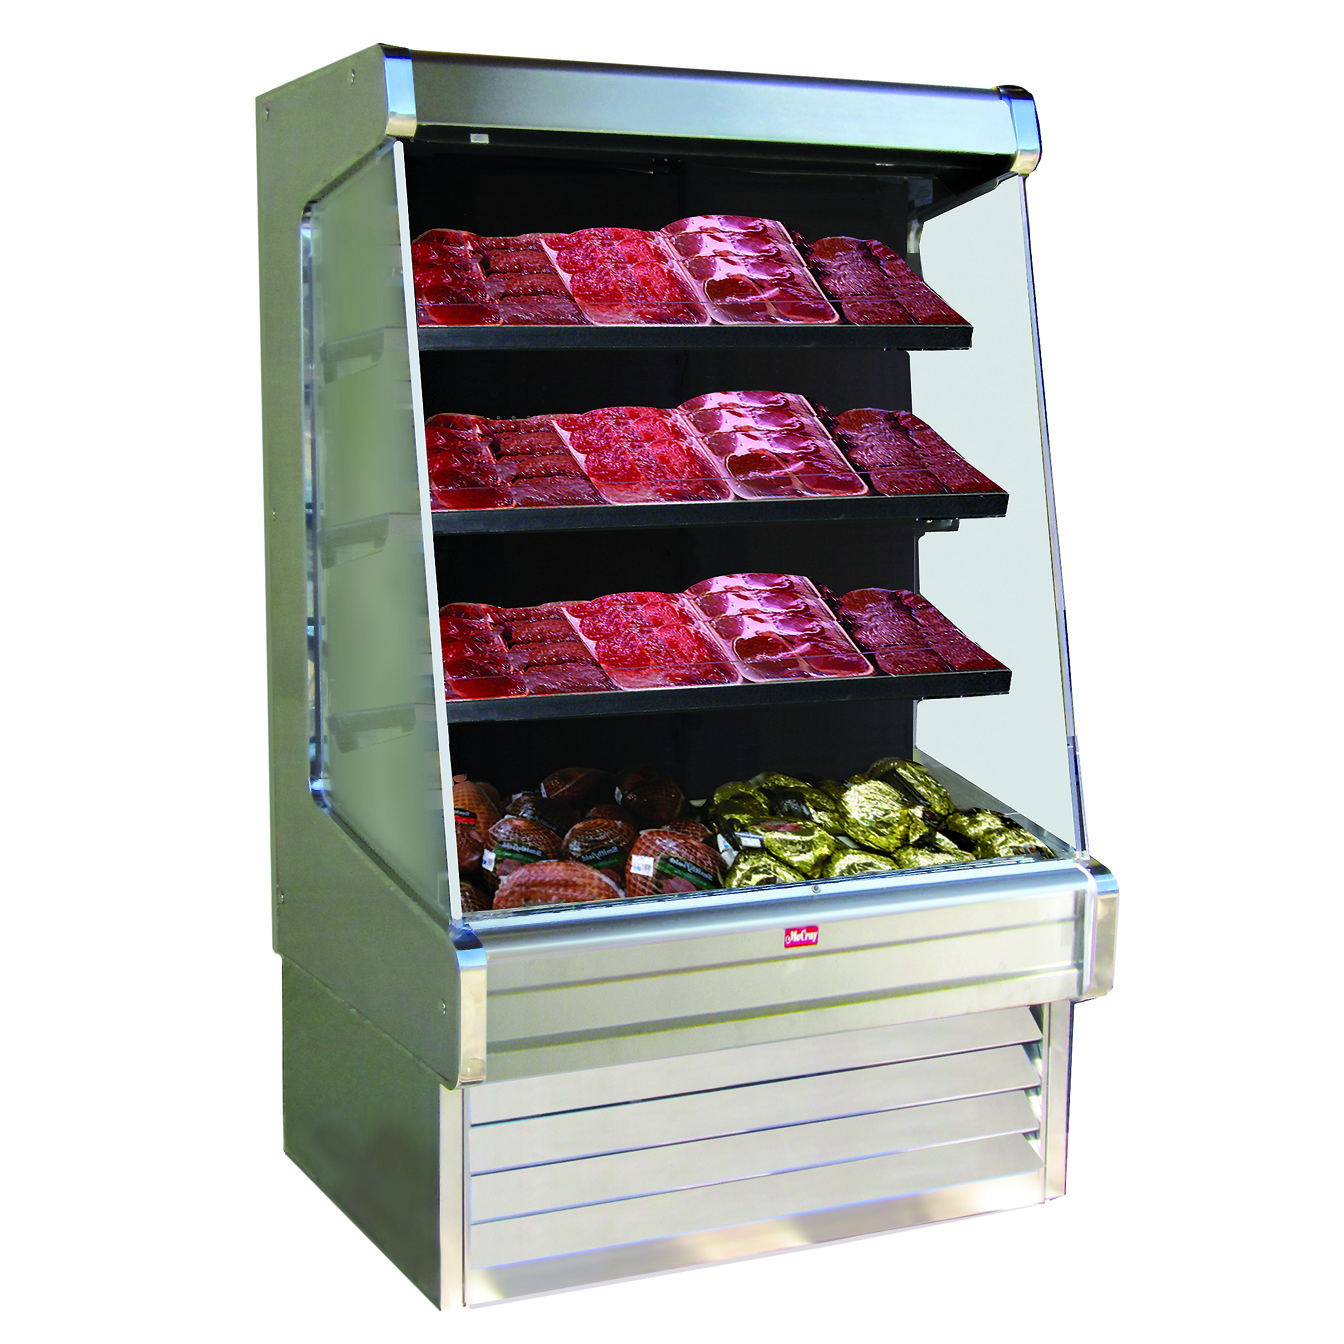 Howard-McCray SC-OM30E-6-S-LED merchandiser, open refrigerated display